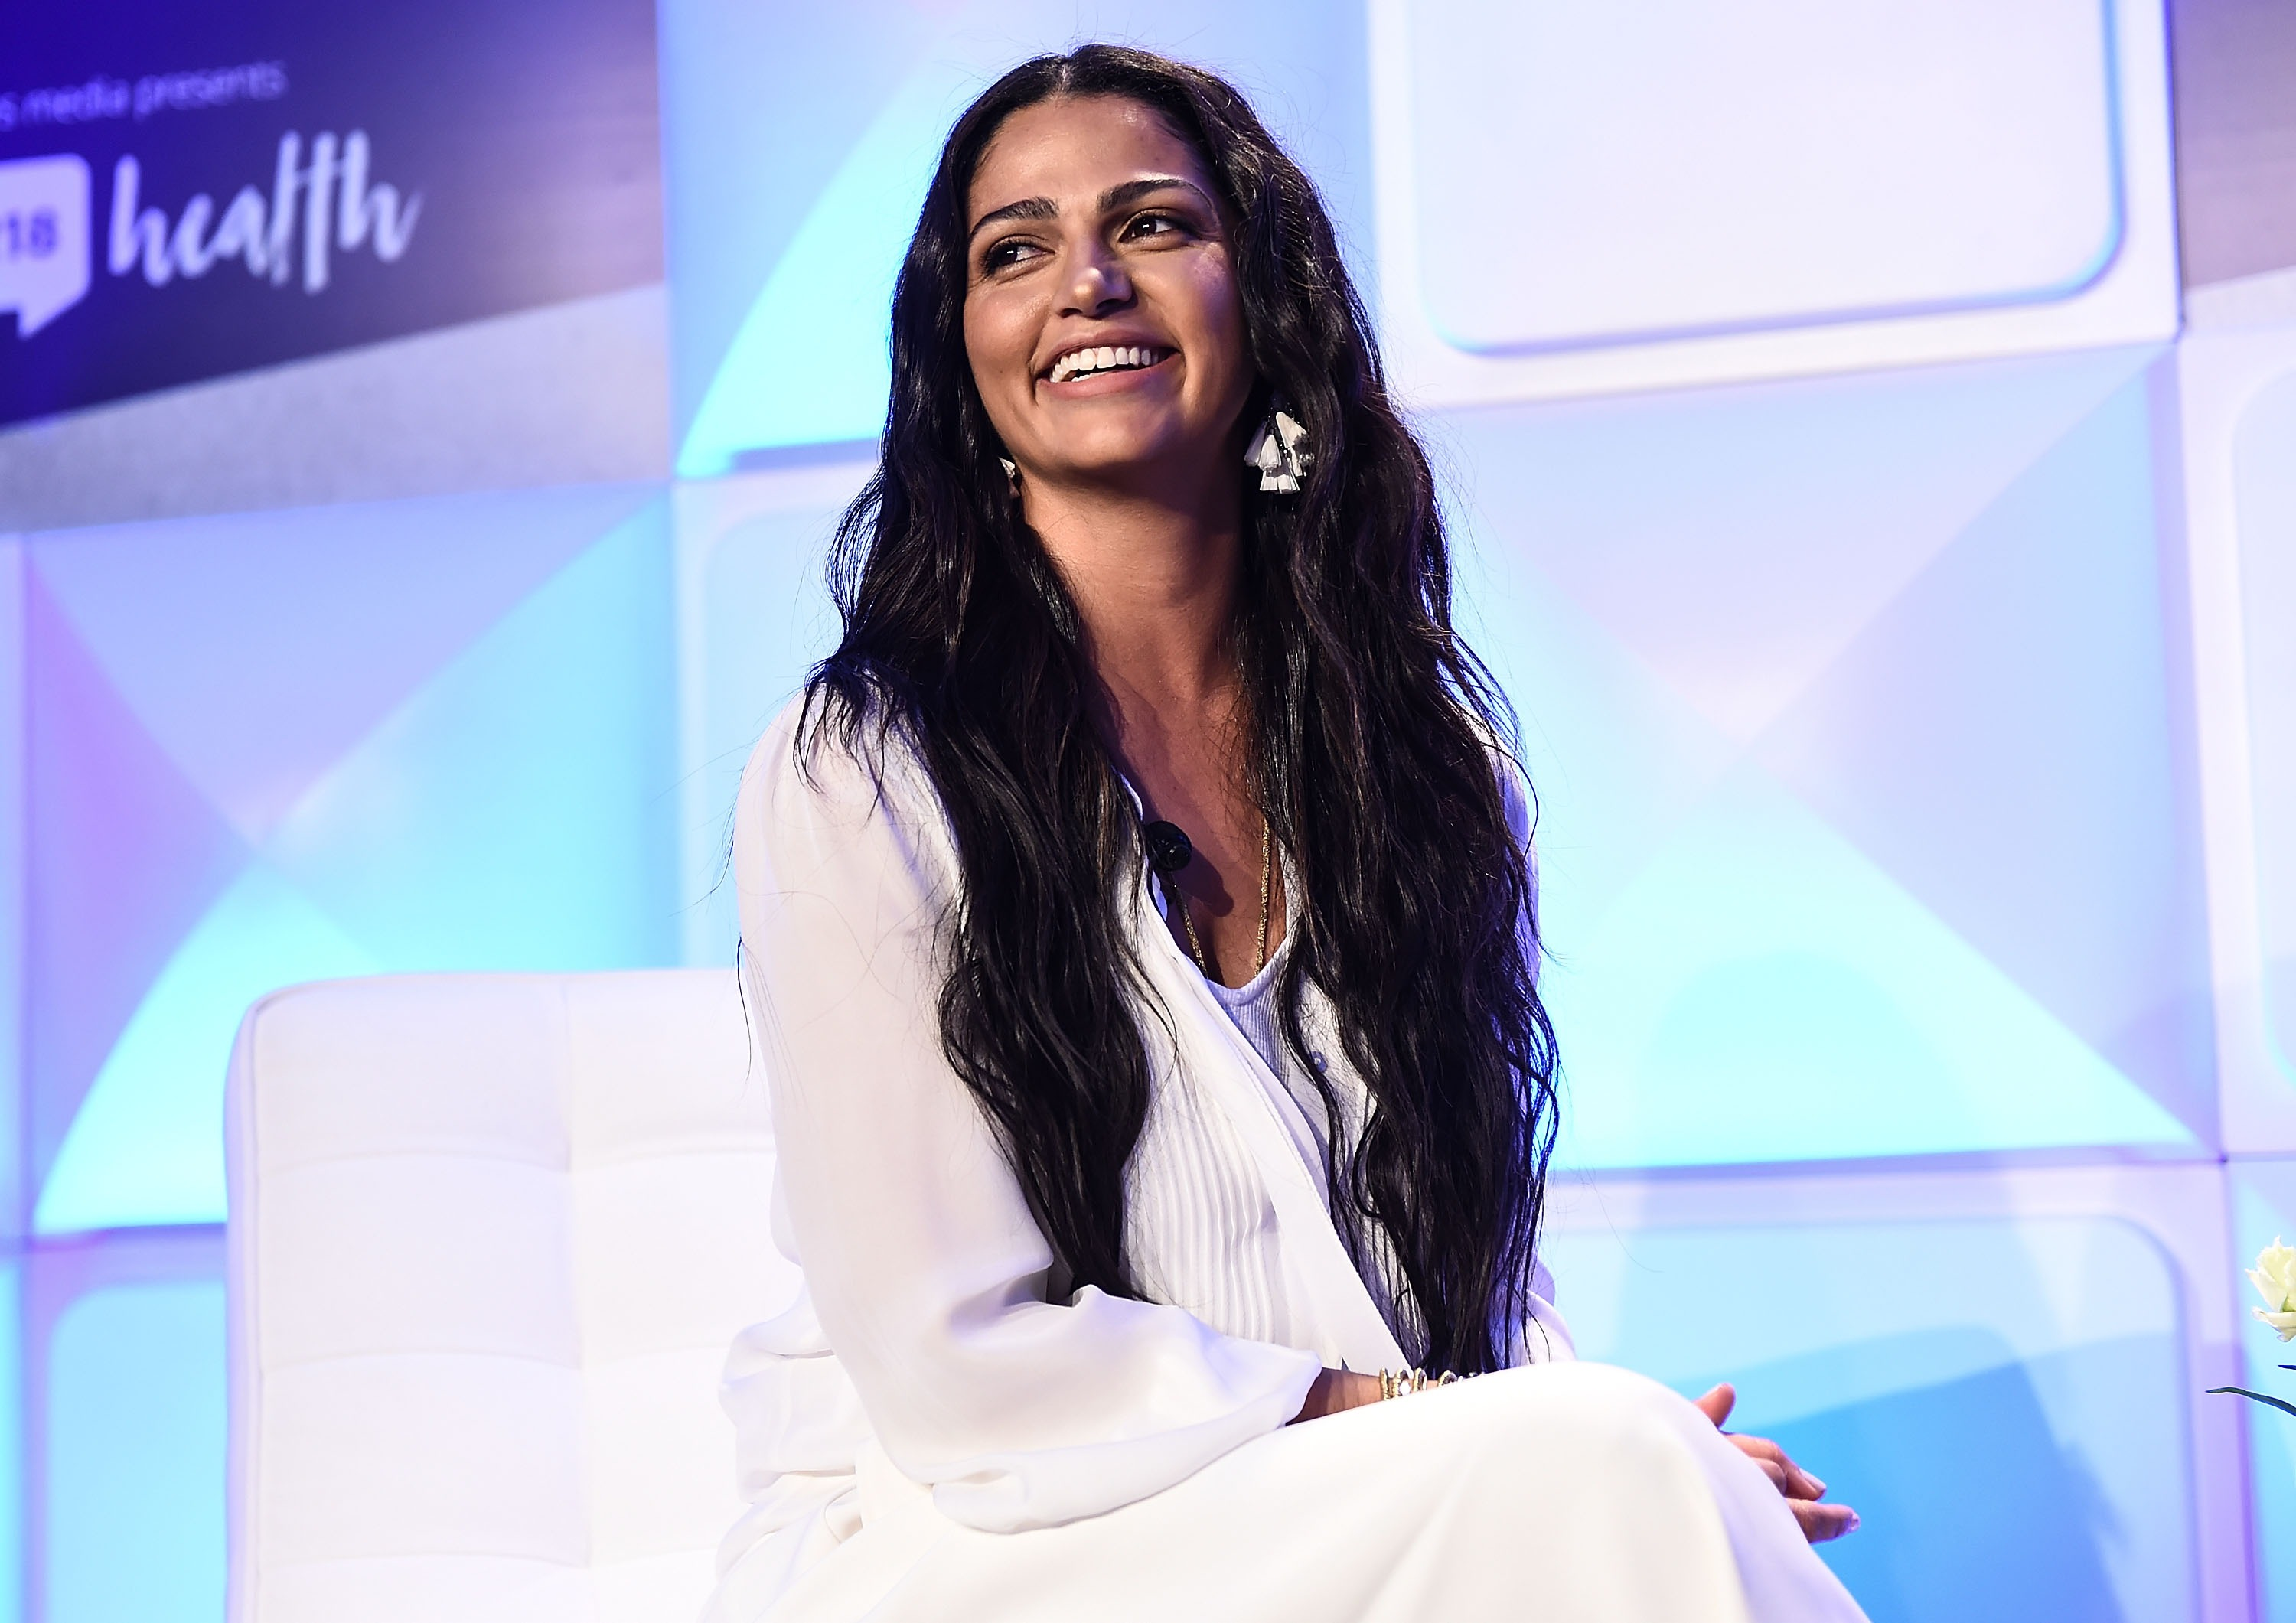 Camila Alves McConaughey attends the #BlogHer18 Health Conference at Tribeca 360 on January 31, 2018 in New York City.  (Photo by Daniel Zuchnik/Getty Images)